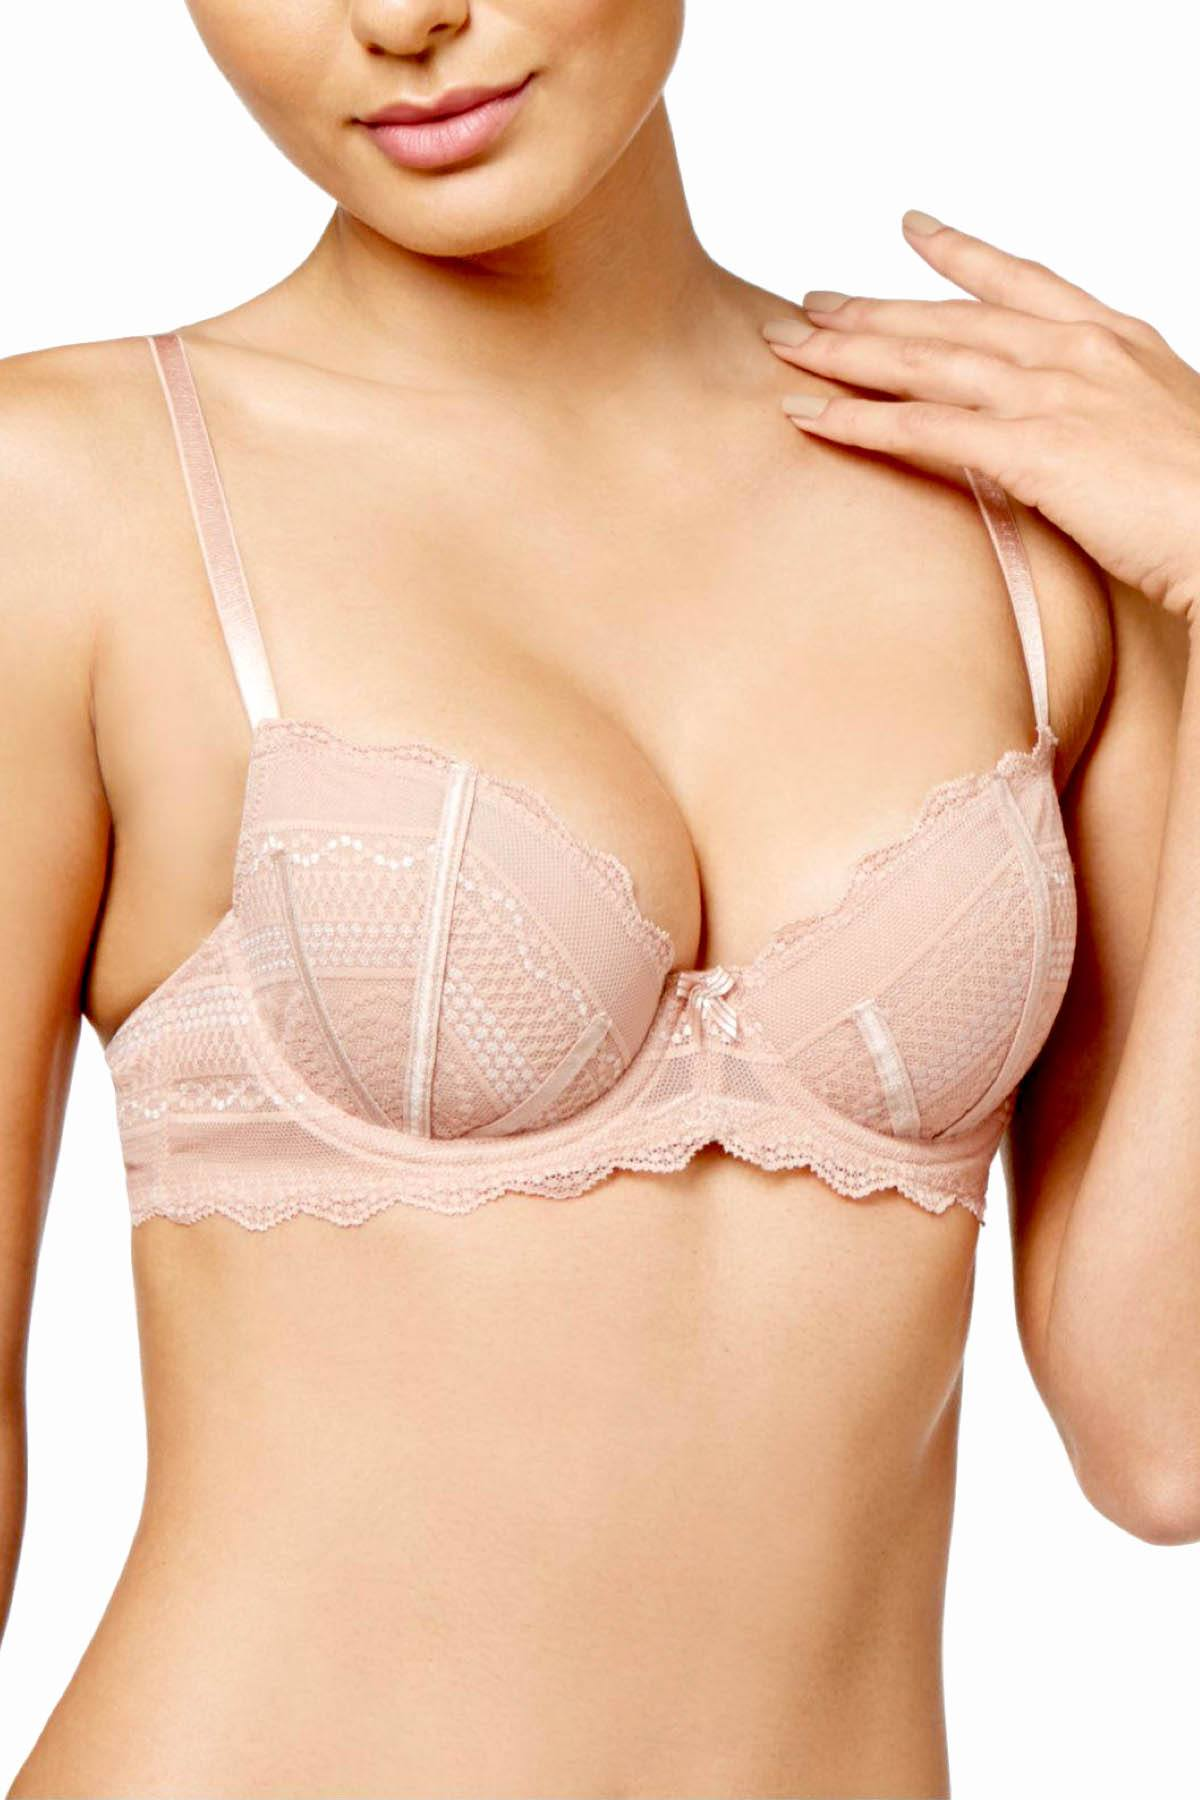 b.tempt'd Mahogany-Rose/Nude b.cherished Lace Bra